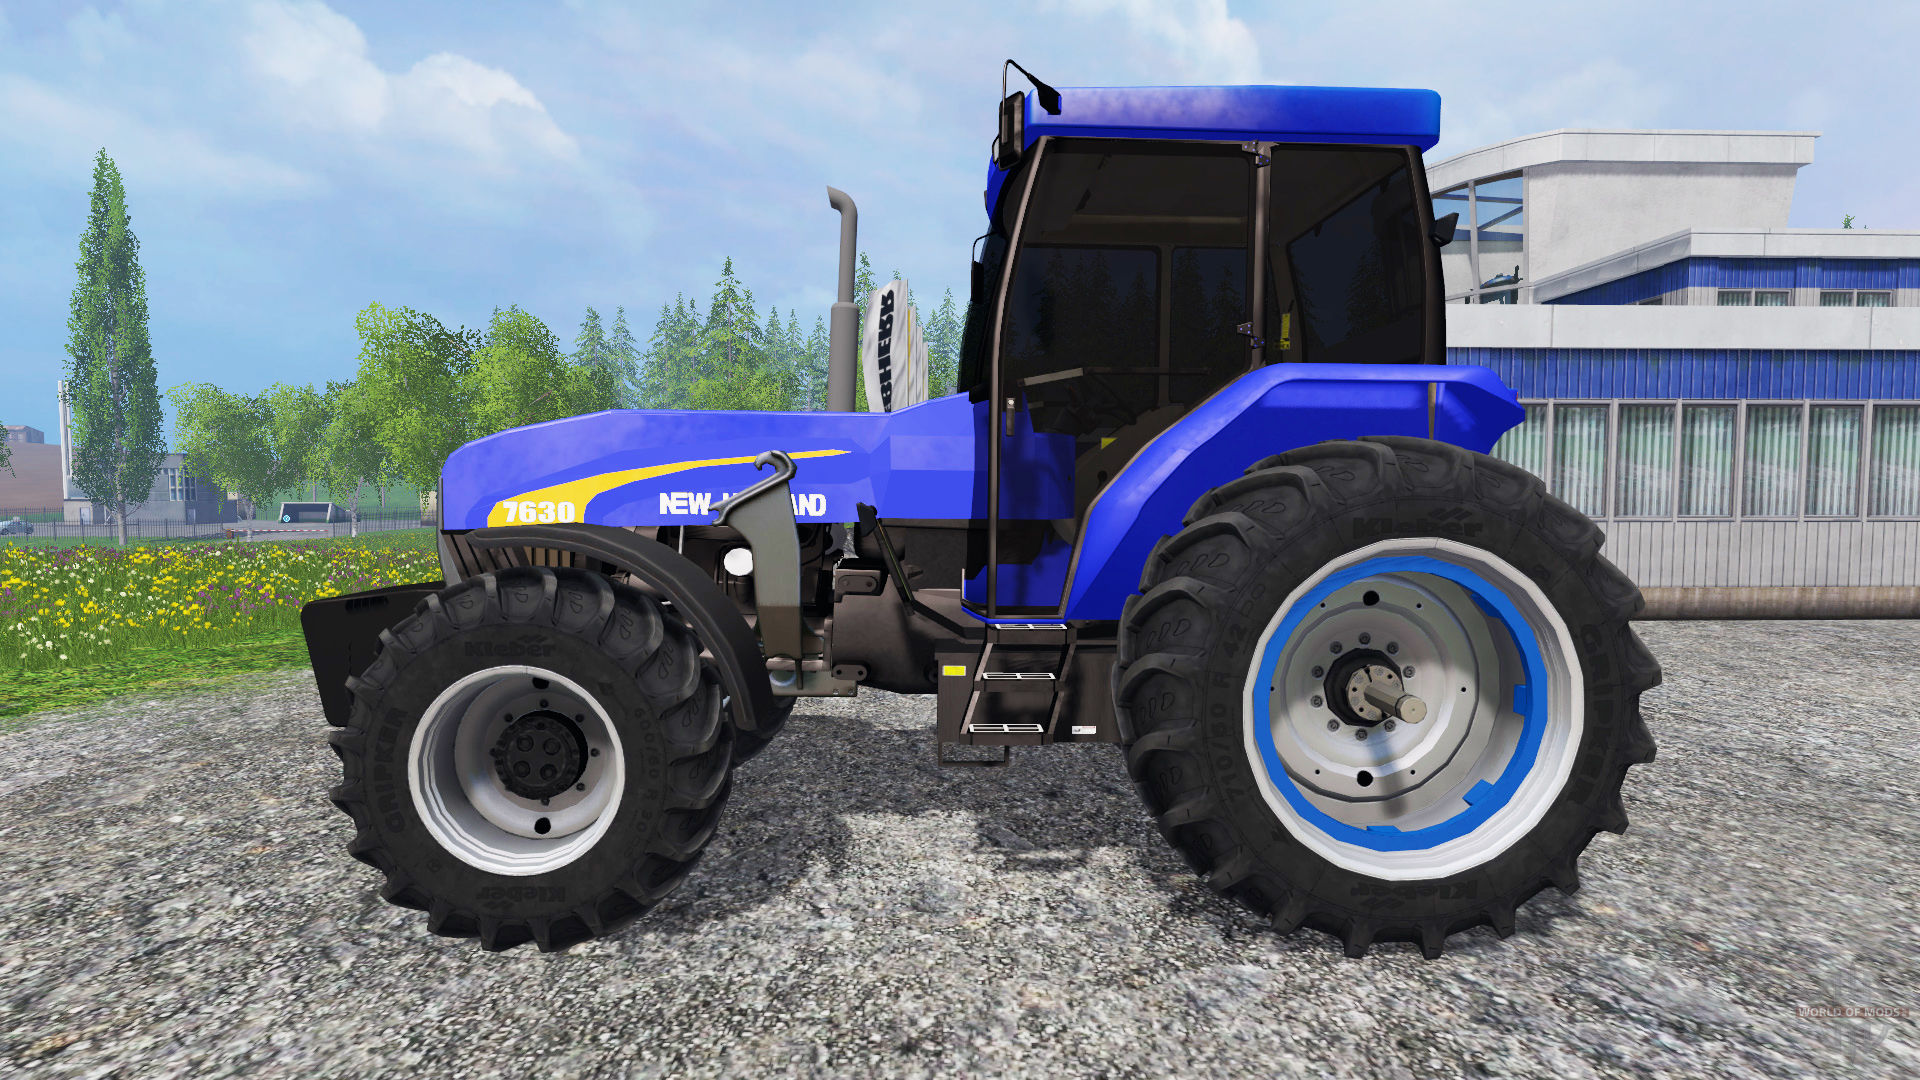 New holland 7630 photo - 6